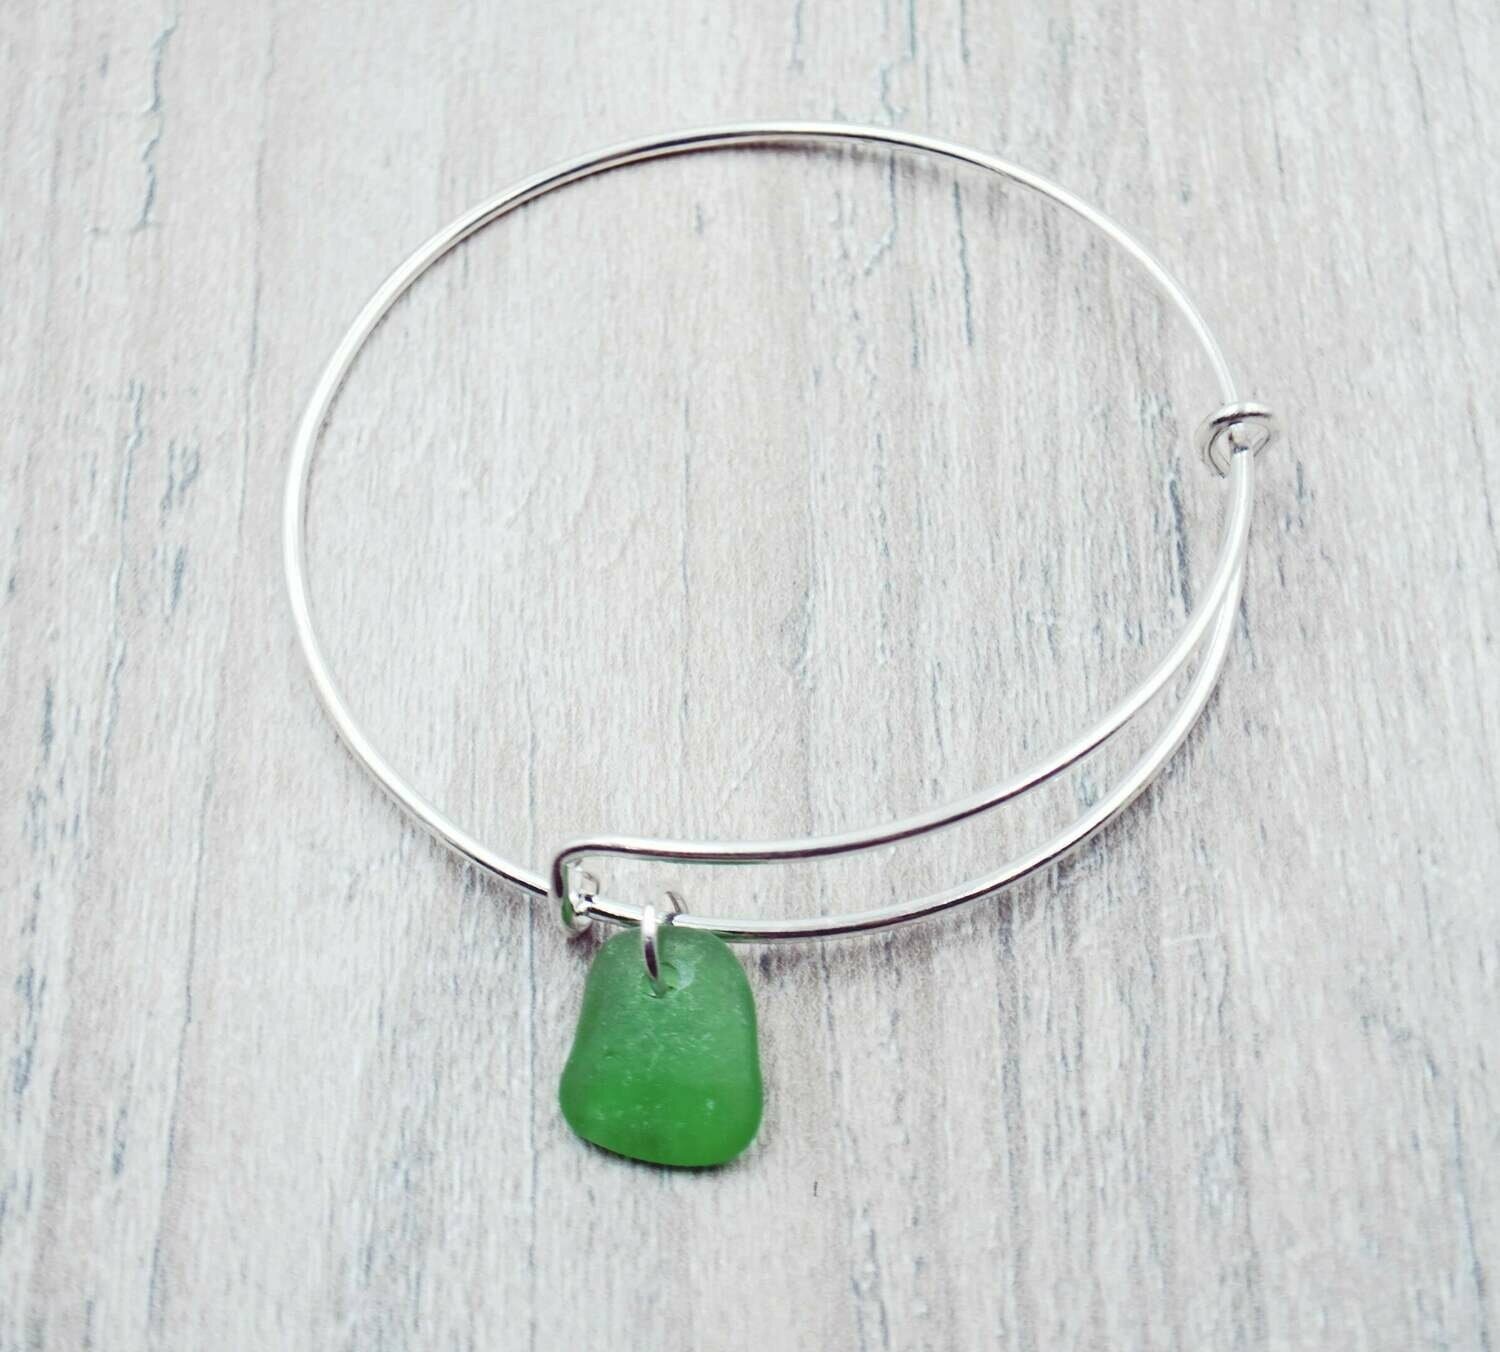 Bangle Bracelet with Green Lake Erie Beach Glass